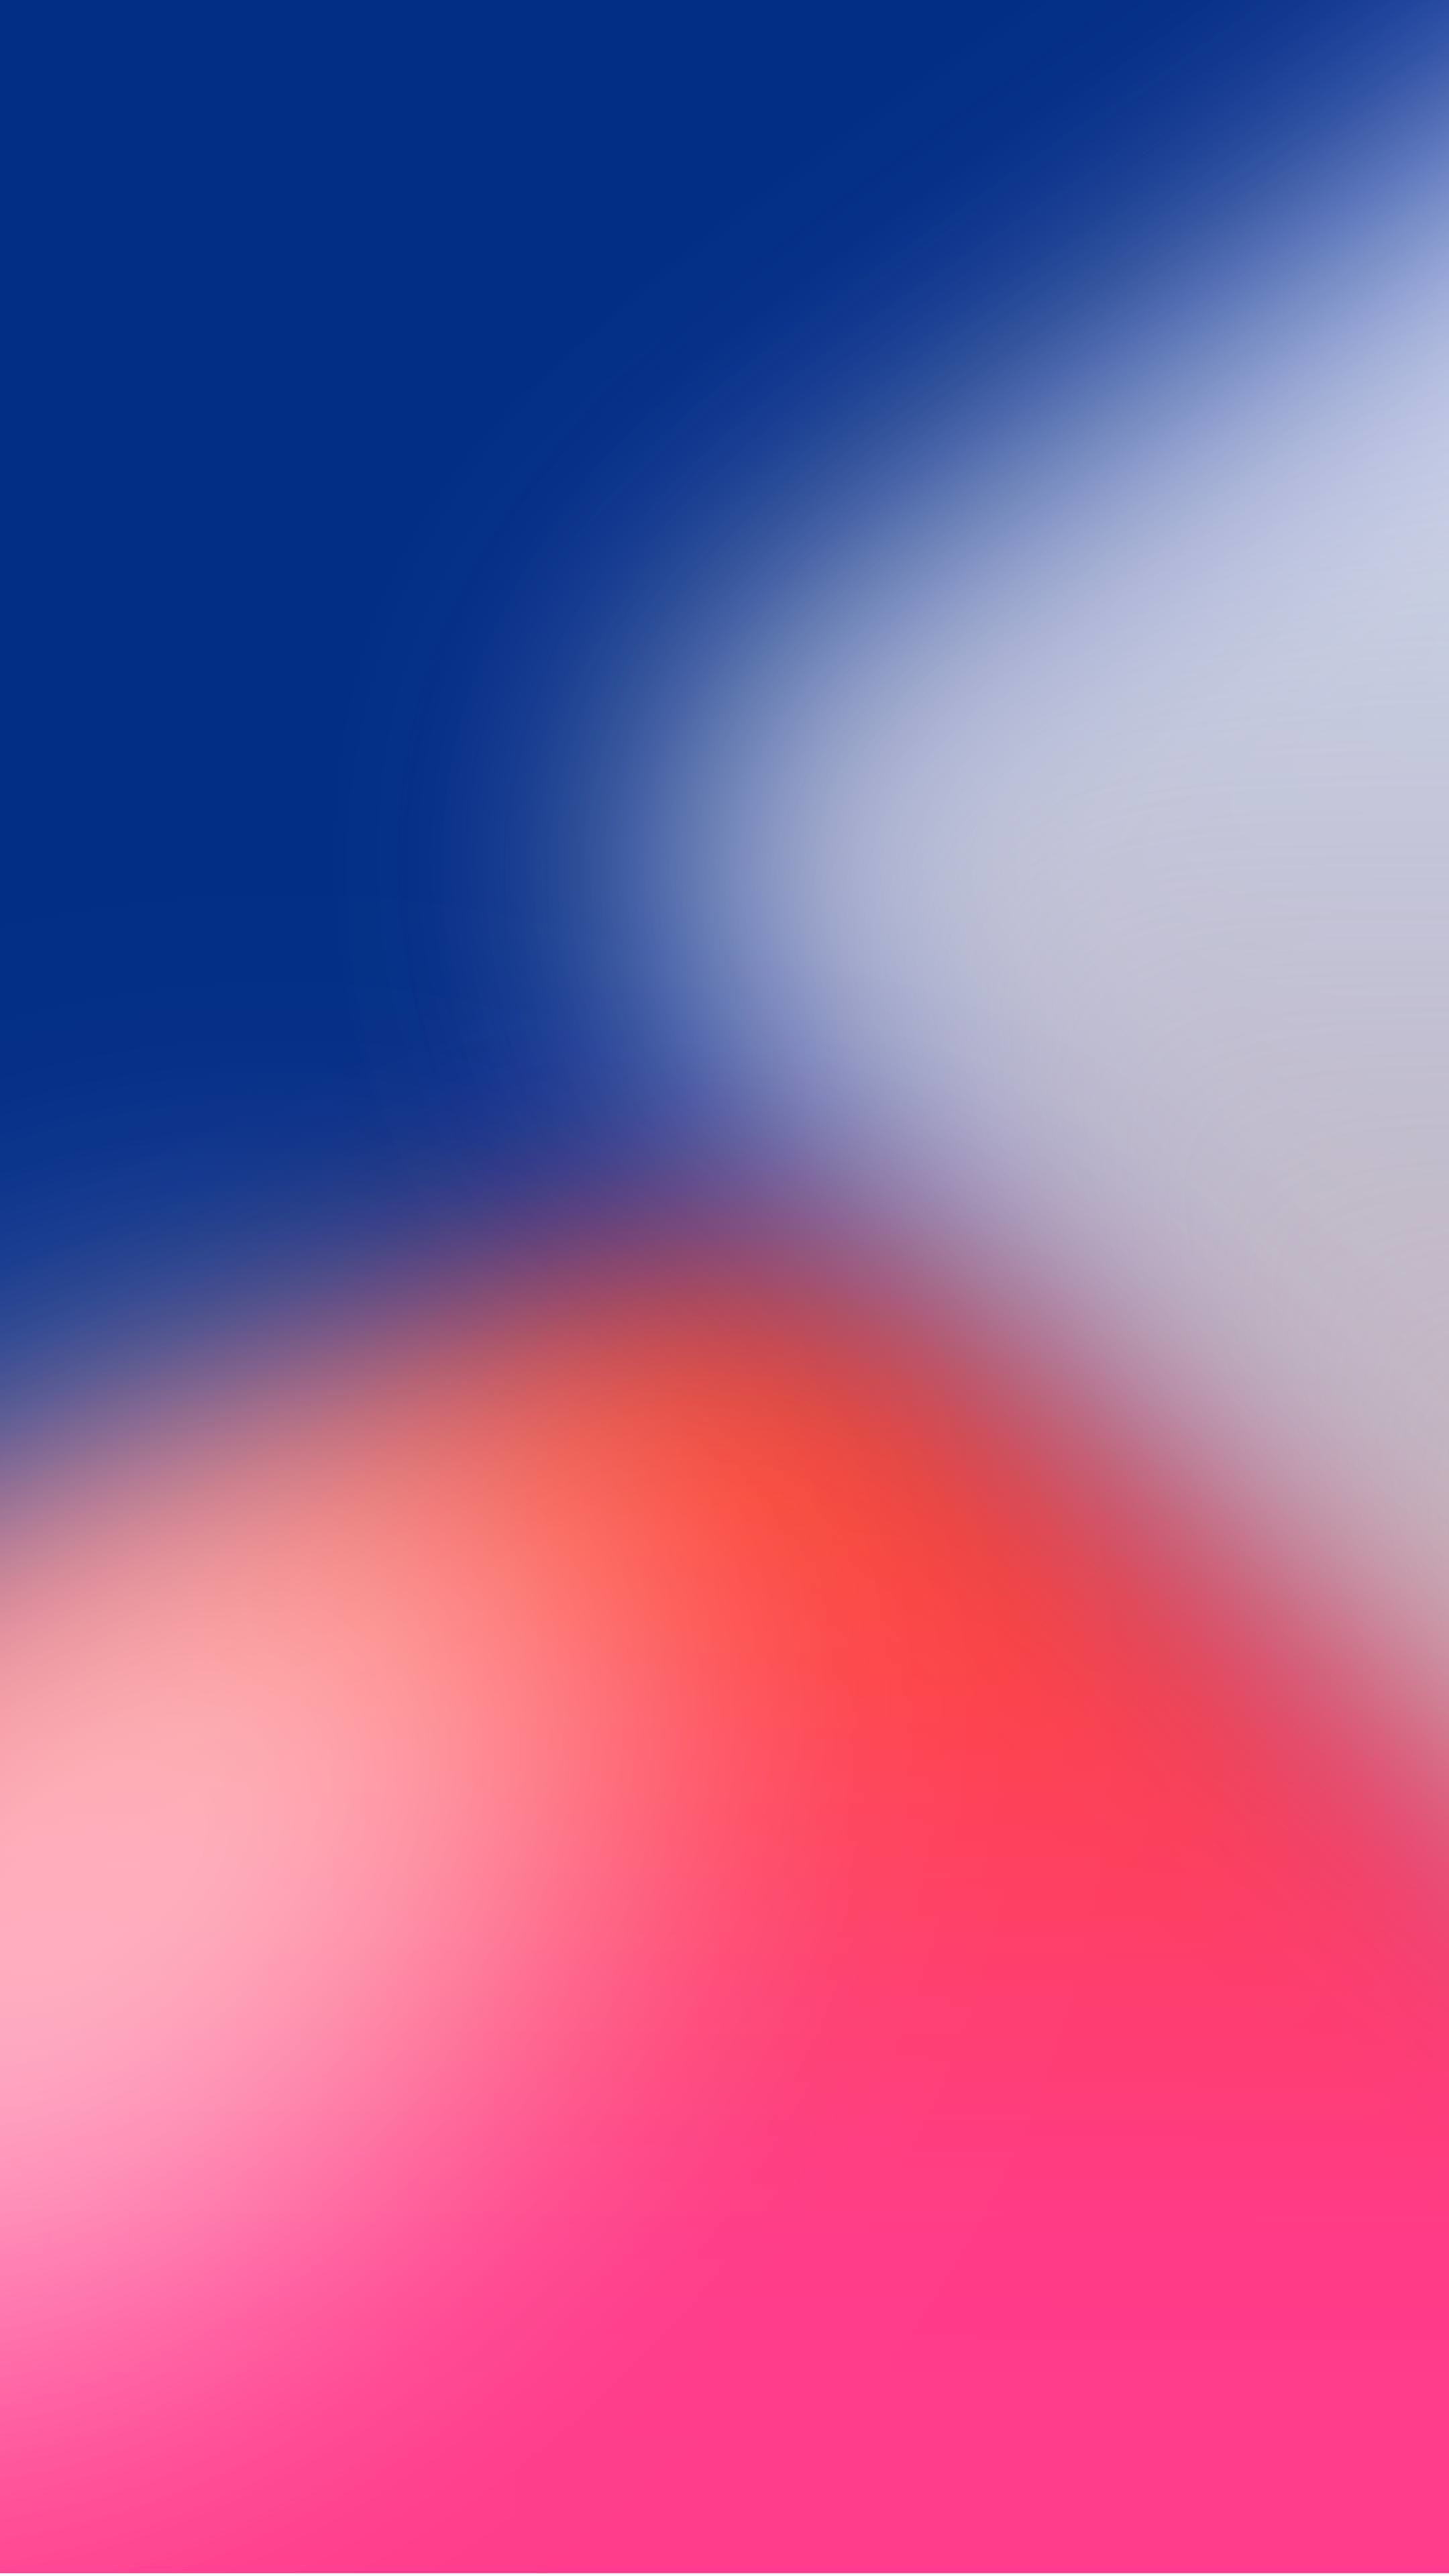 IPhone iOS 8 Wallpaper HD (79+ images)